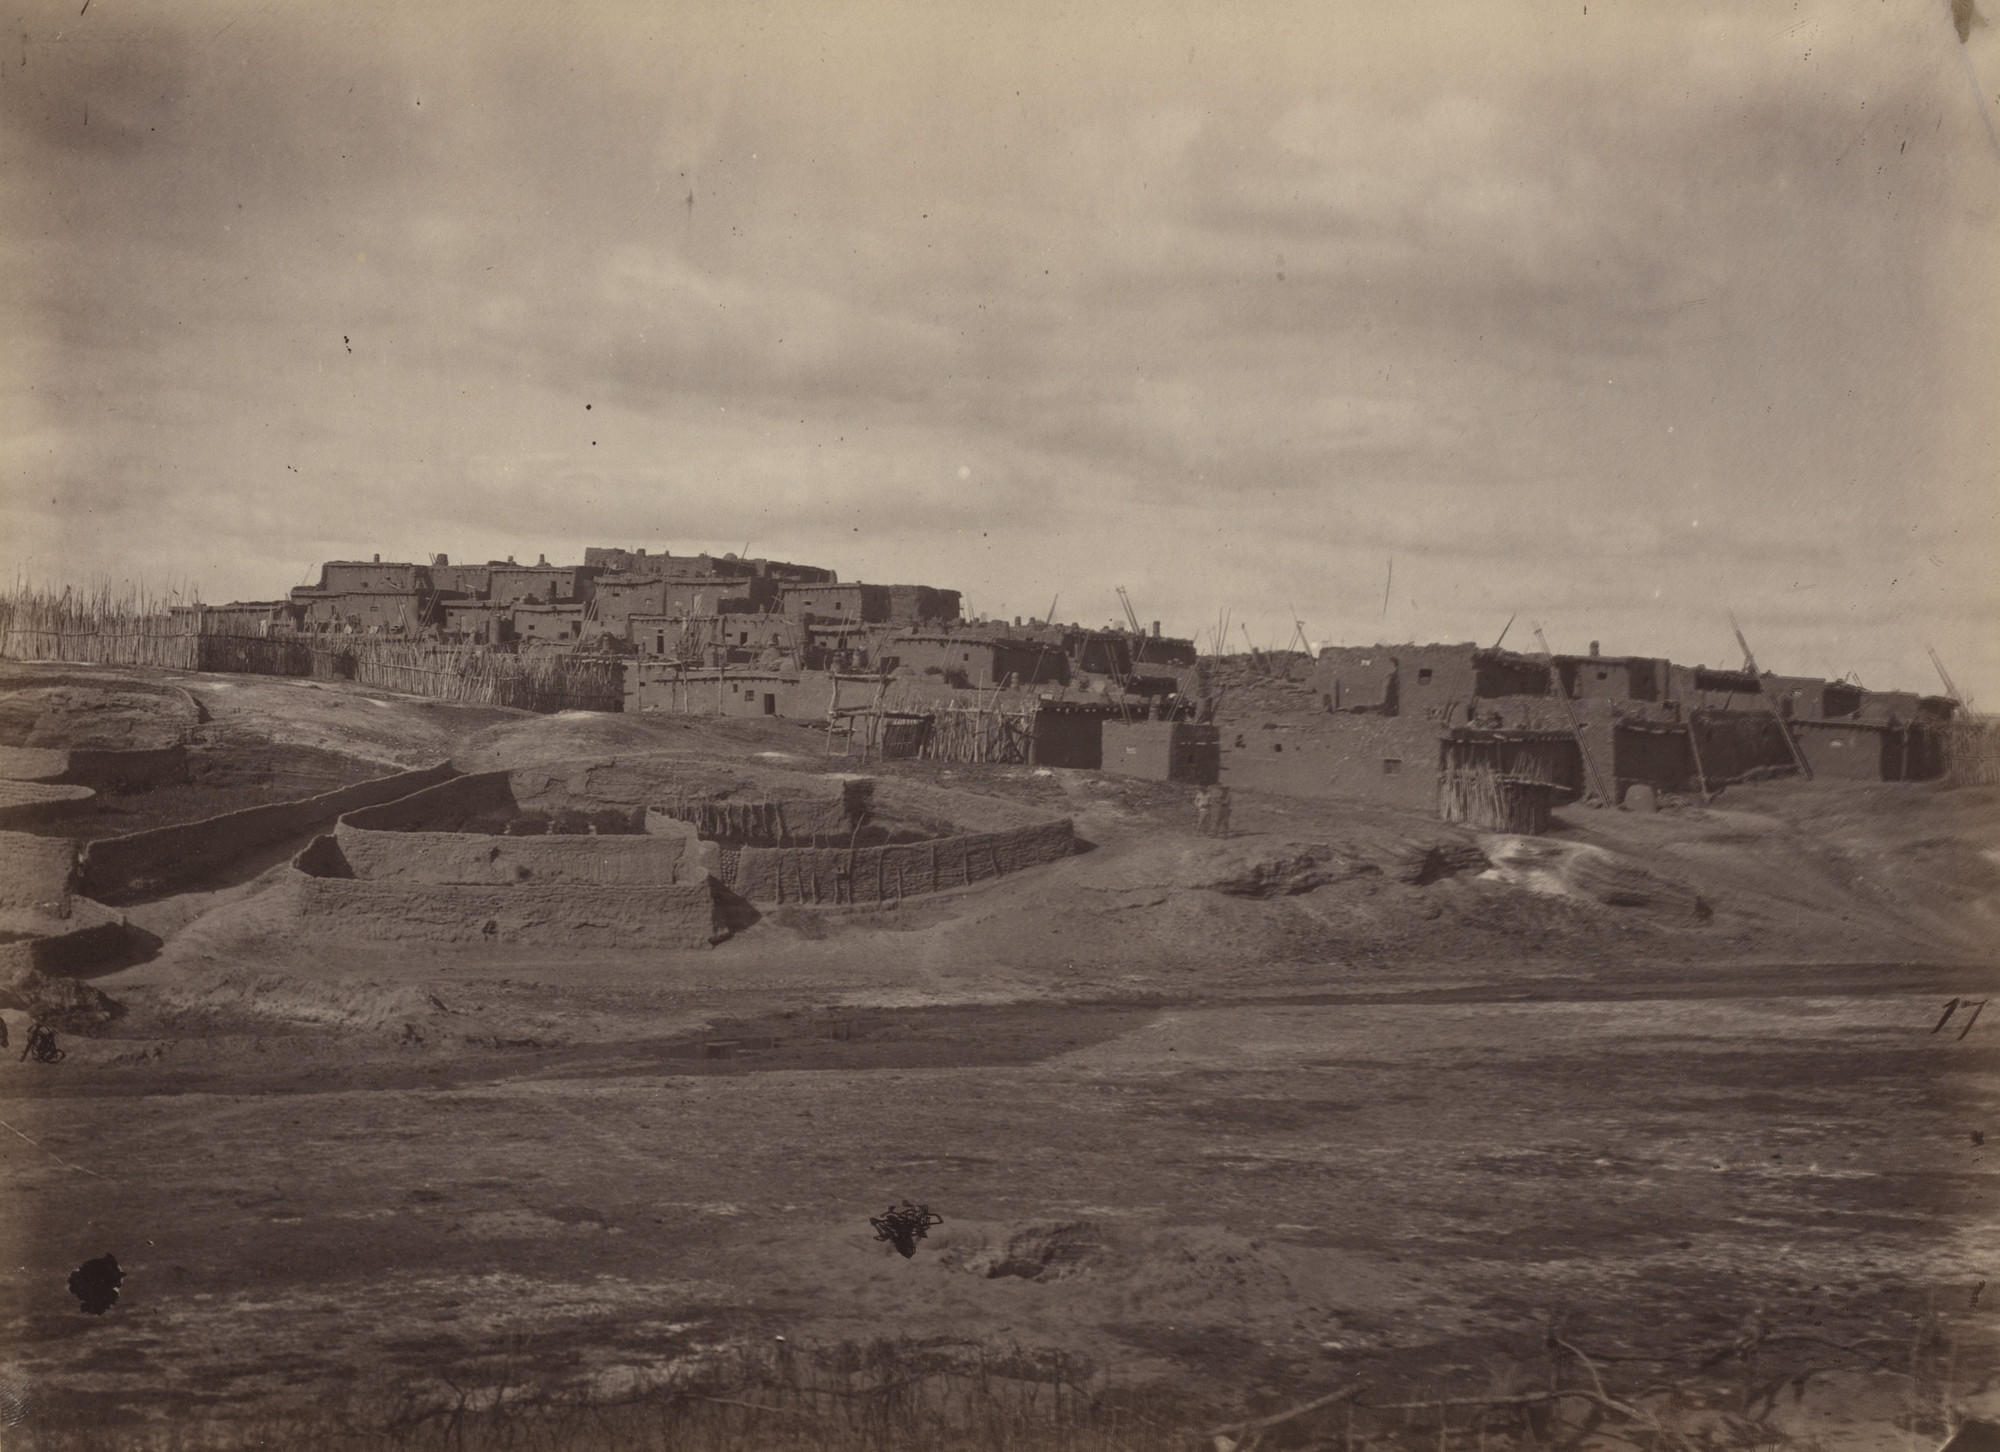 Timothy O'Sullivan. Indian Pueblo, Zuni, N.M.. Seasons of 1871, 1872 and 1873